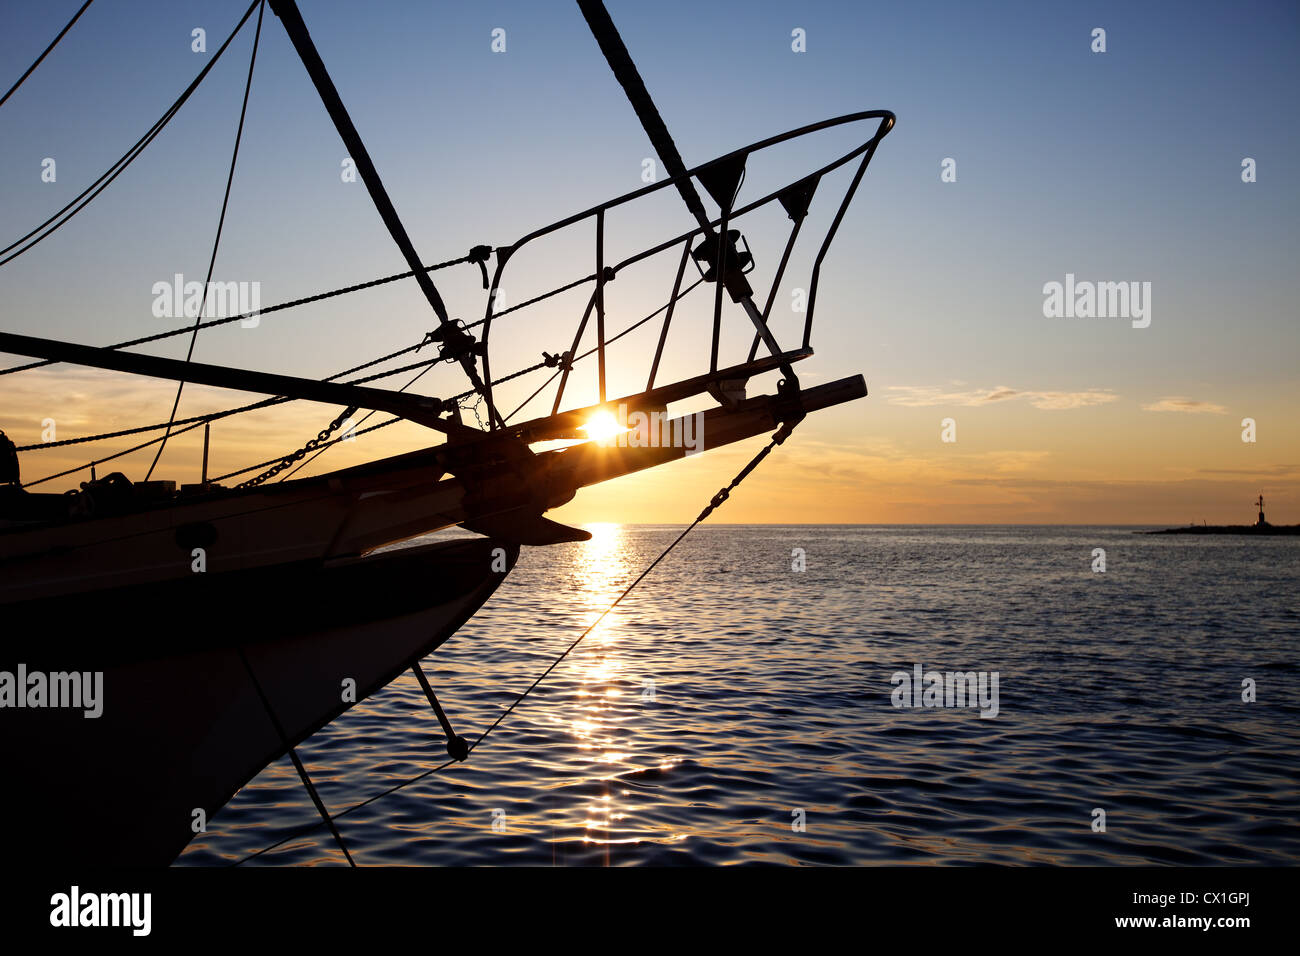 Segelschiff im Sonnenuntergang Sailing boat at sunset - Stock Image